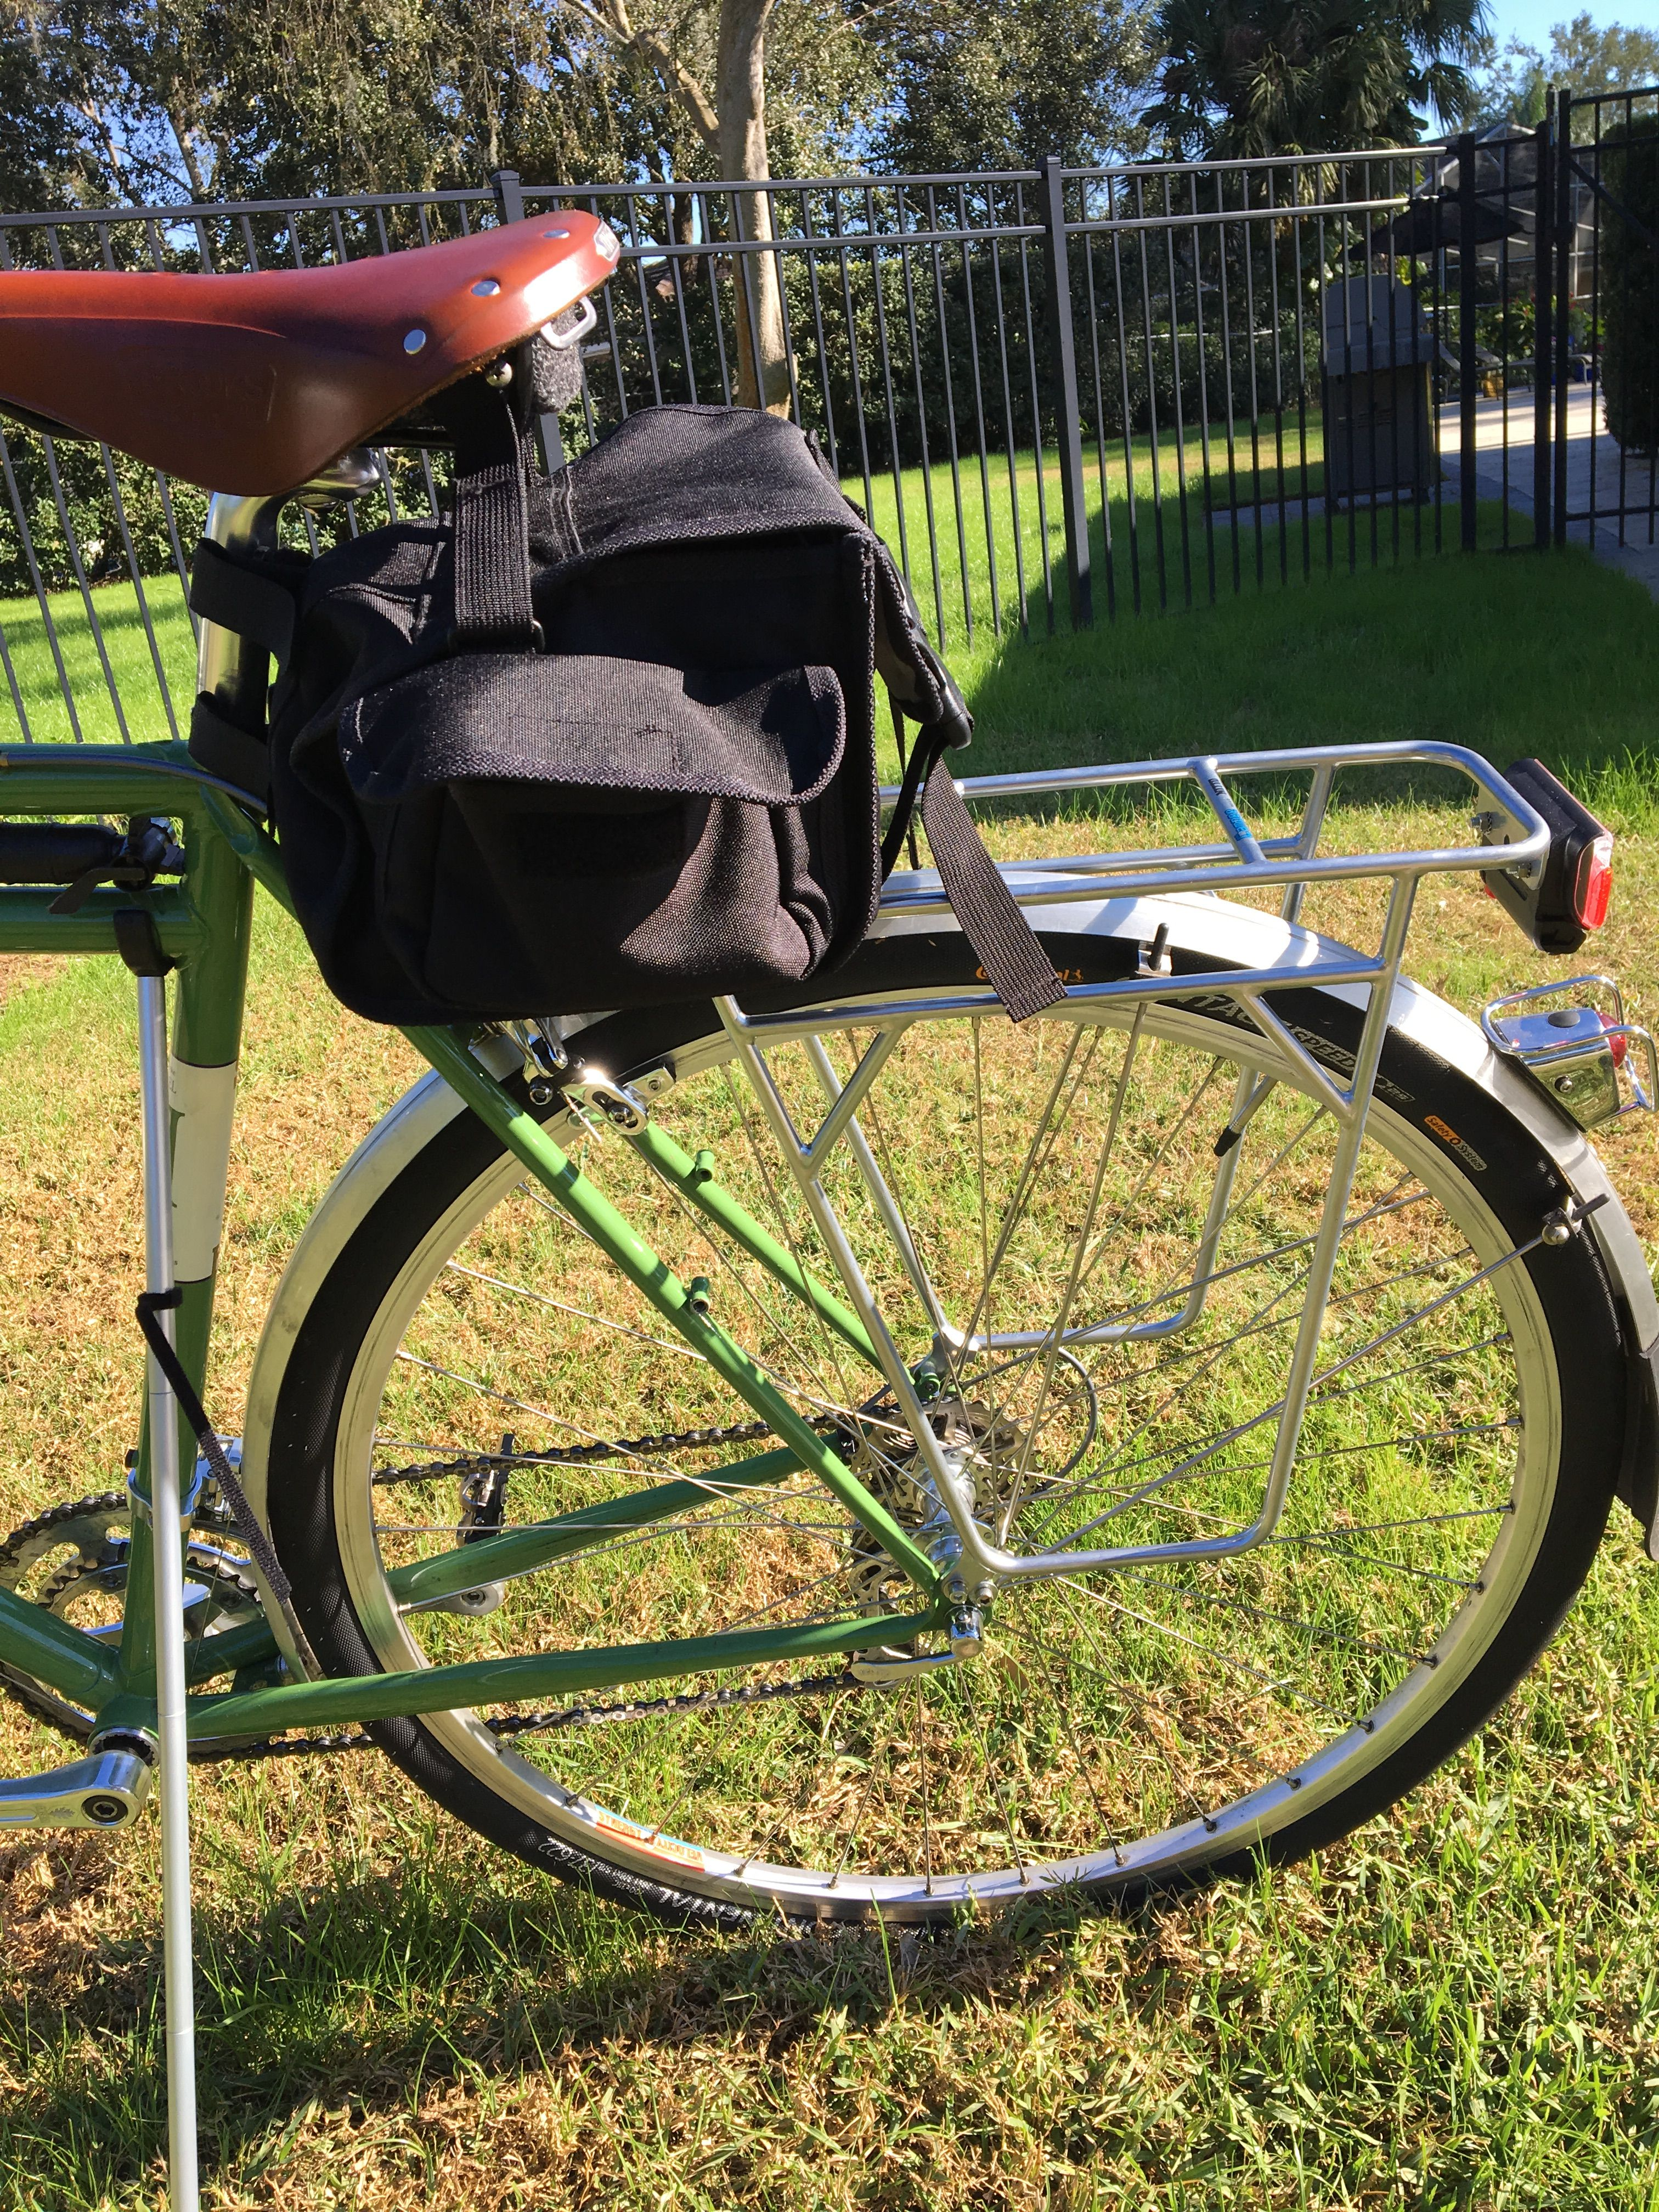 some bicycle at of added img used best rack bub namely works second convenient a i her the d my to accessories main found green rear lacked life bike and back crate commuting